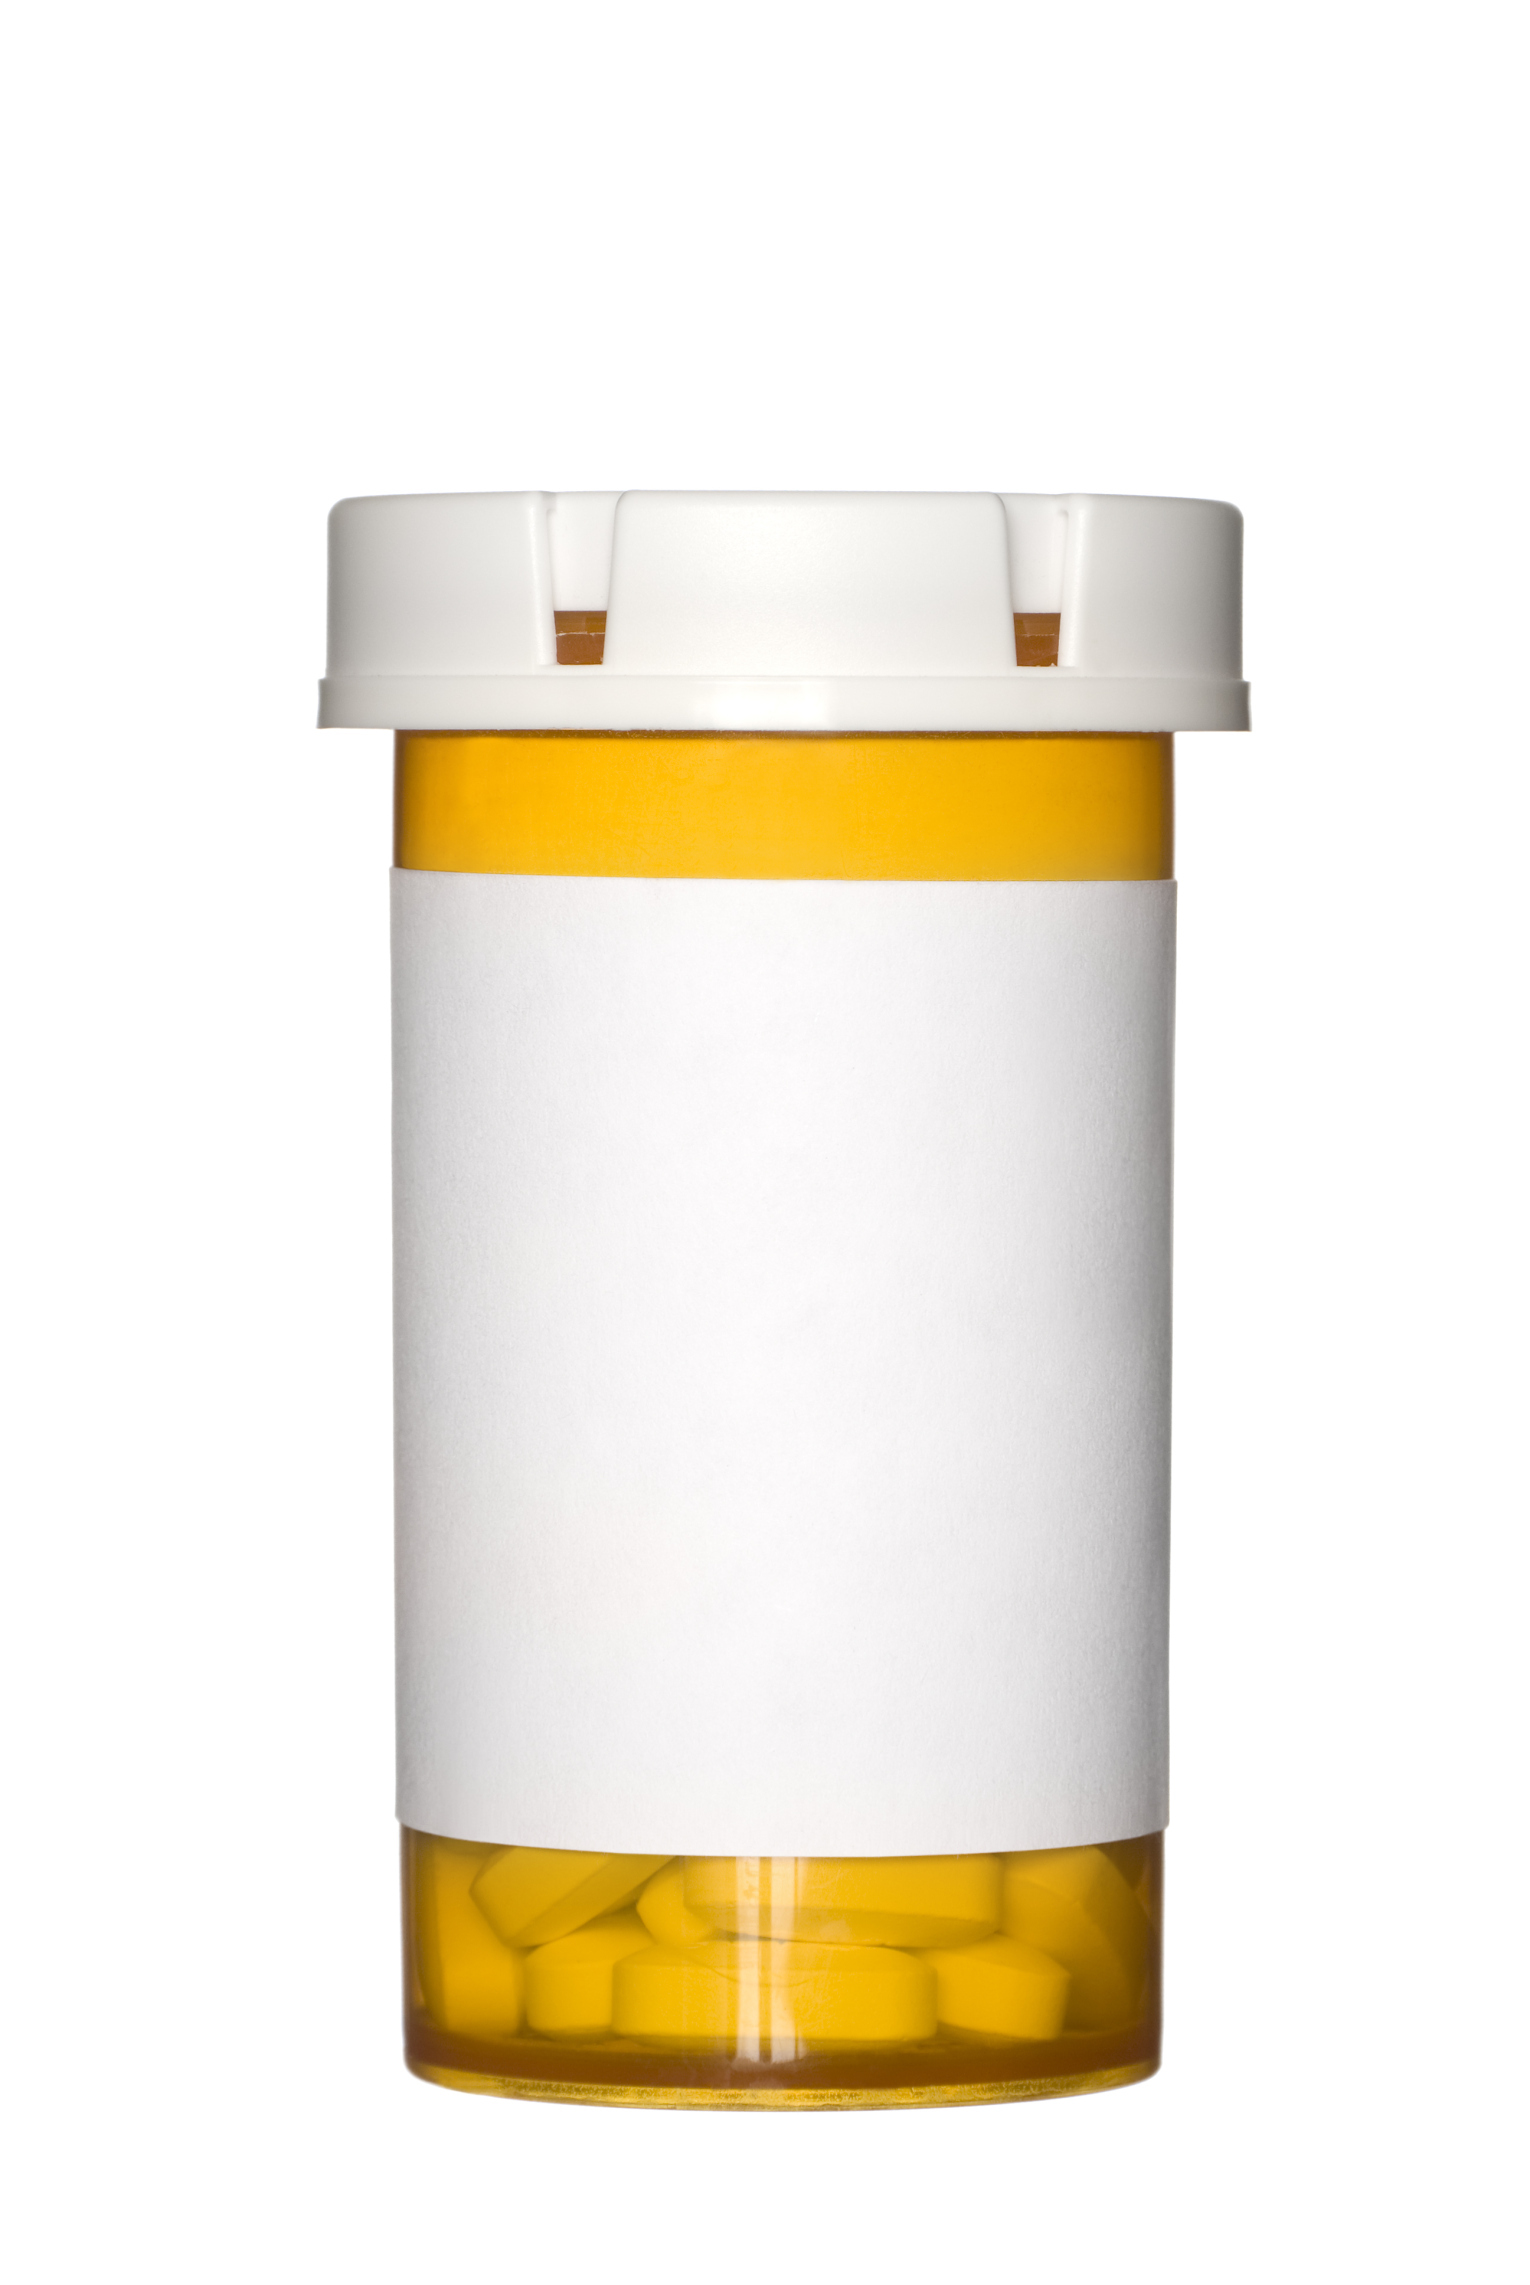 A medical pill bottle with a blank label for copy space and the bottle is isolated on a white background.